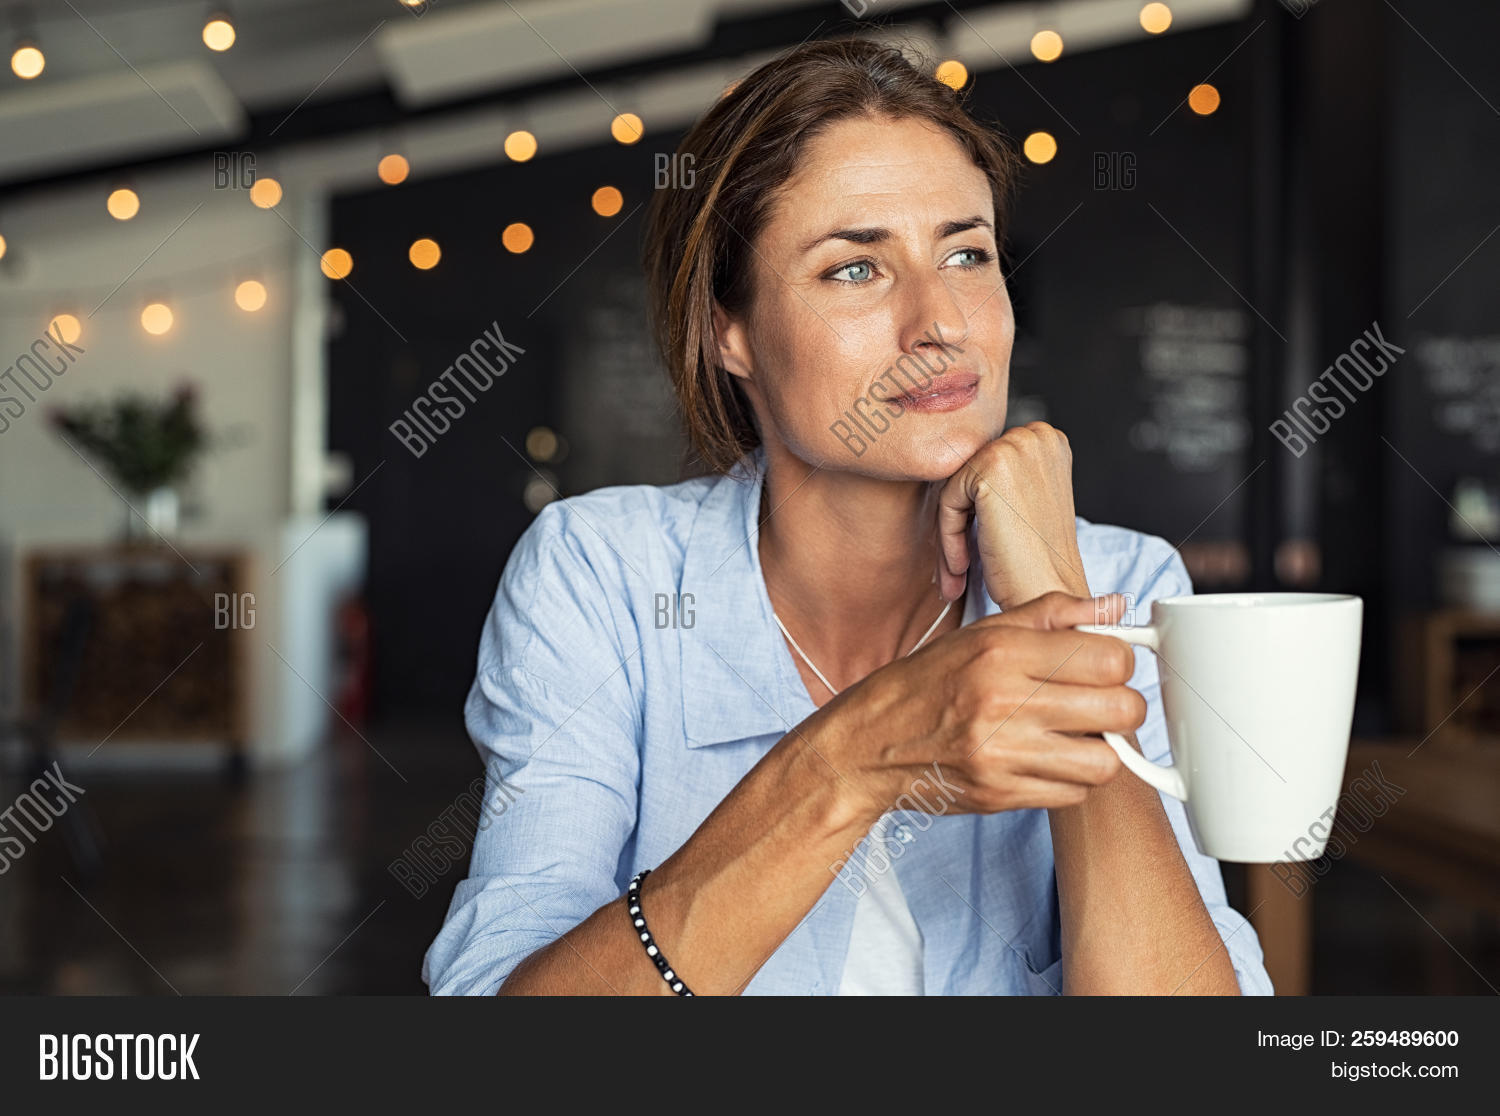 40s,aspiration,cafe,cafeteria,casual,coffee,coffee shop,confident,contemplating,contemplative,dreaming,drink,drinking tea,hand on chin,happy,hispanic,holding,idea,imagination,indoor,indoors,latin,latin girl,leisure,lifestyle,looking away,mature,matured,mid adult woman,mug,one,pensive,people,positive,refreshment,relax,relaxation,restaurant,serene,sitting,smiling,tea,think,thinking woman,thoughtful,waiting,woman